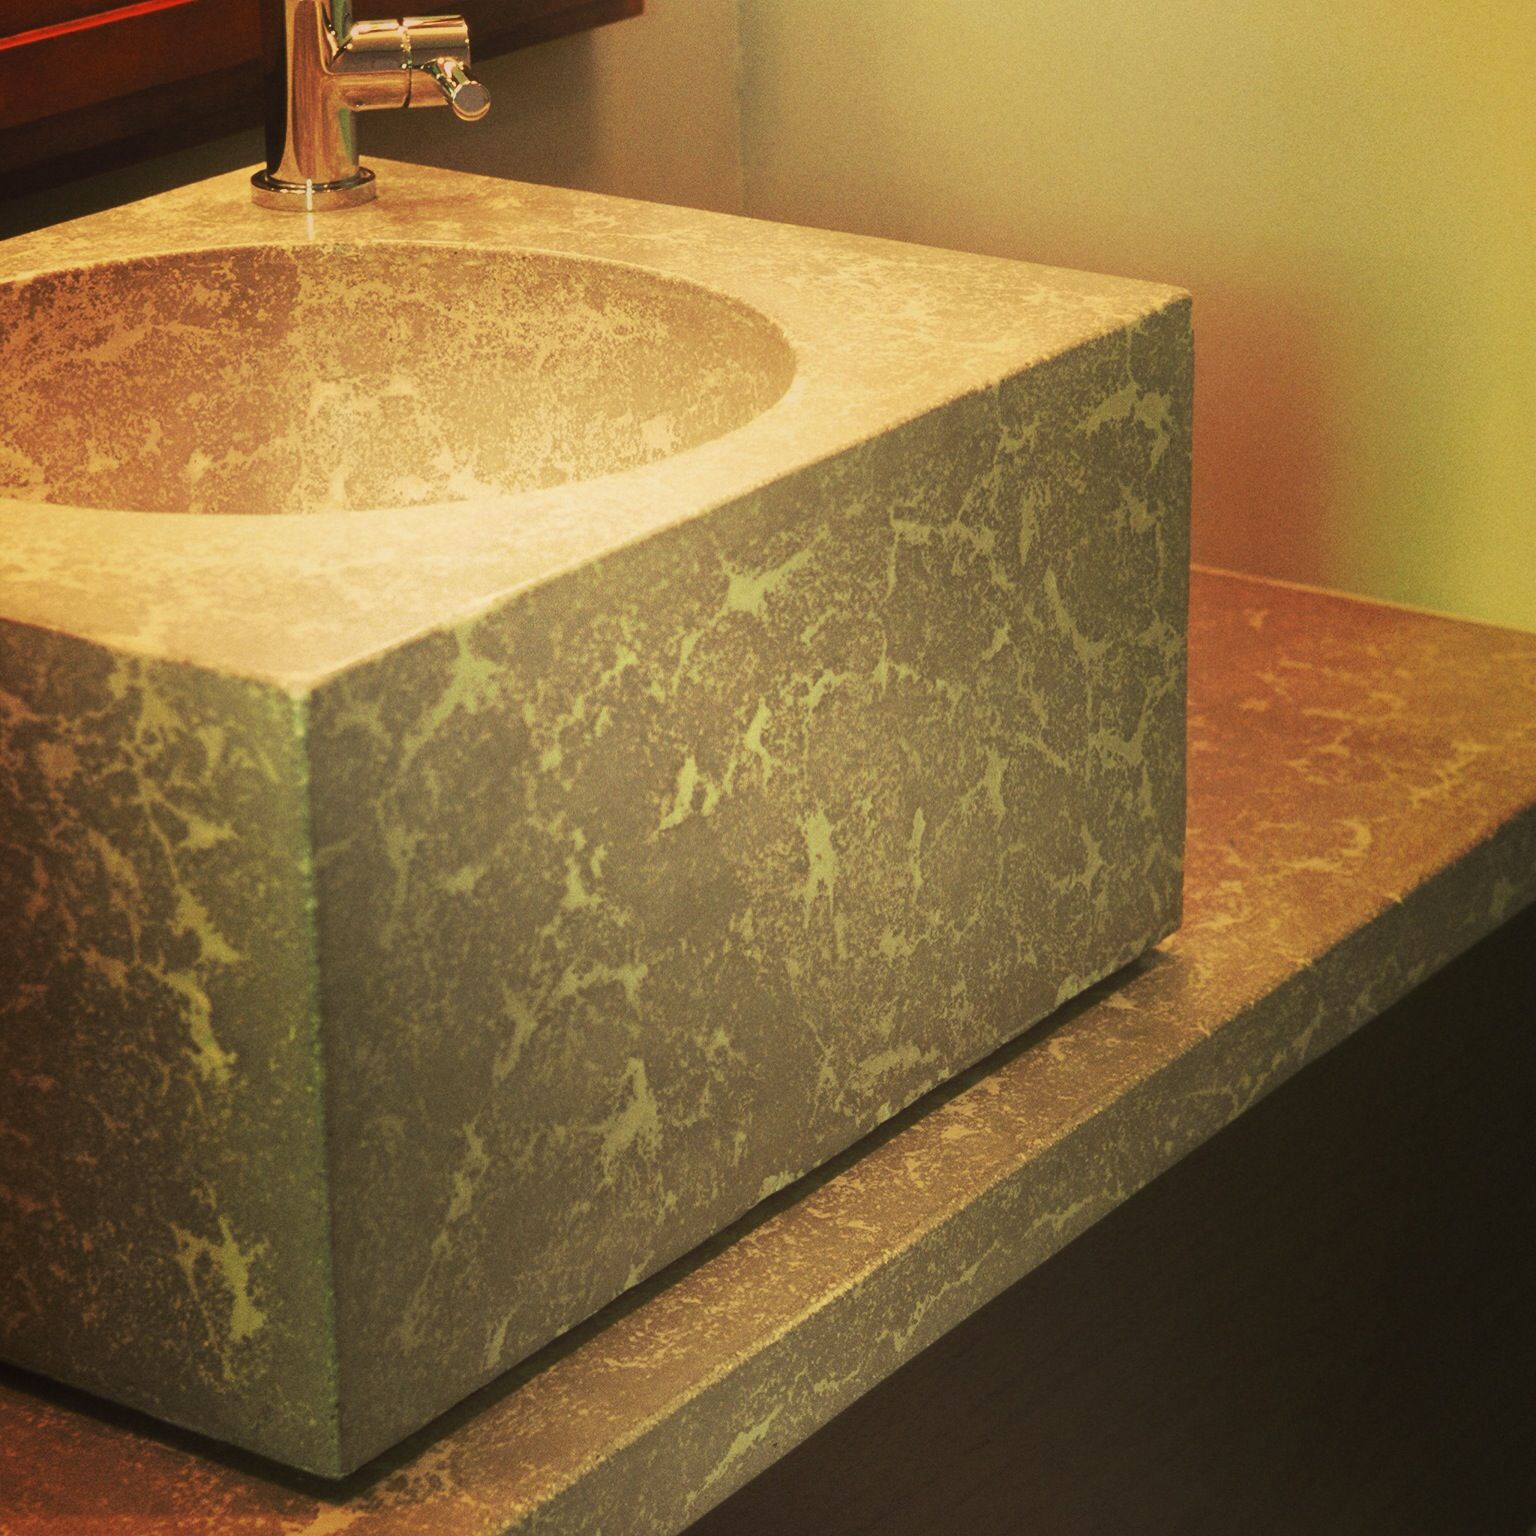 Concrete Countertop Mix Design Vanity Made With The 39press 39 Technique Using The Buddy